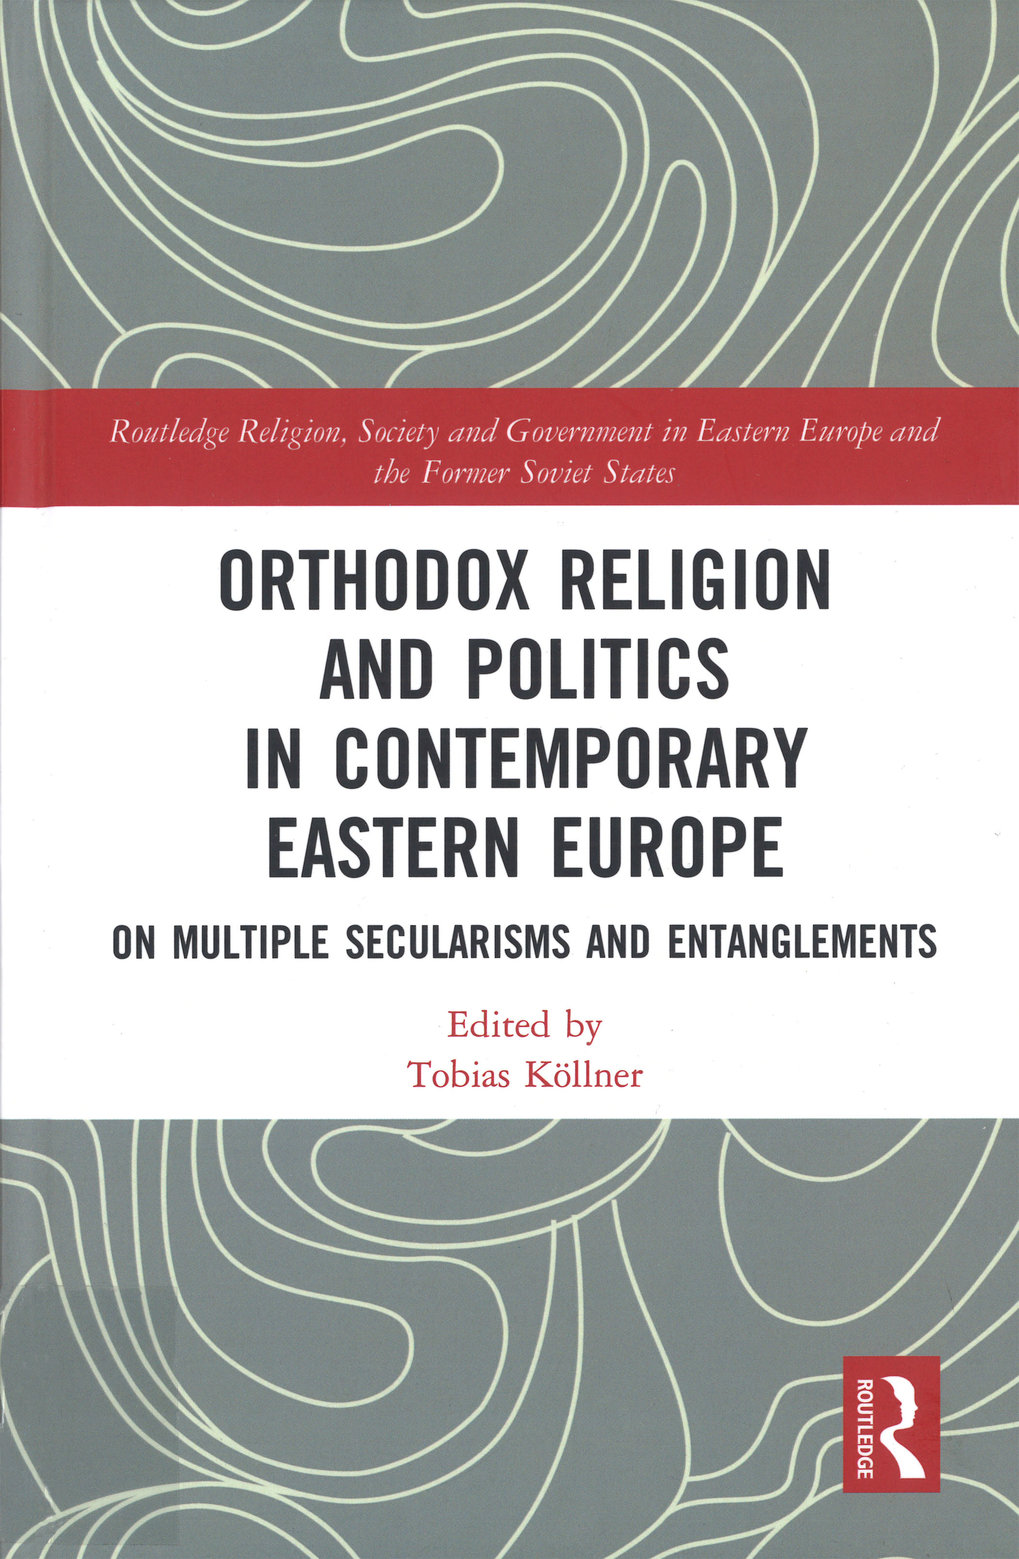 Orthodox religion and politics in contemporary Eastern Europe. On multiple secularisms and entanglements